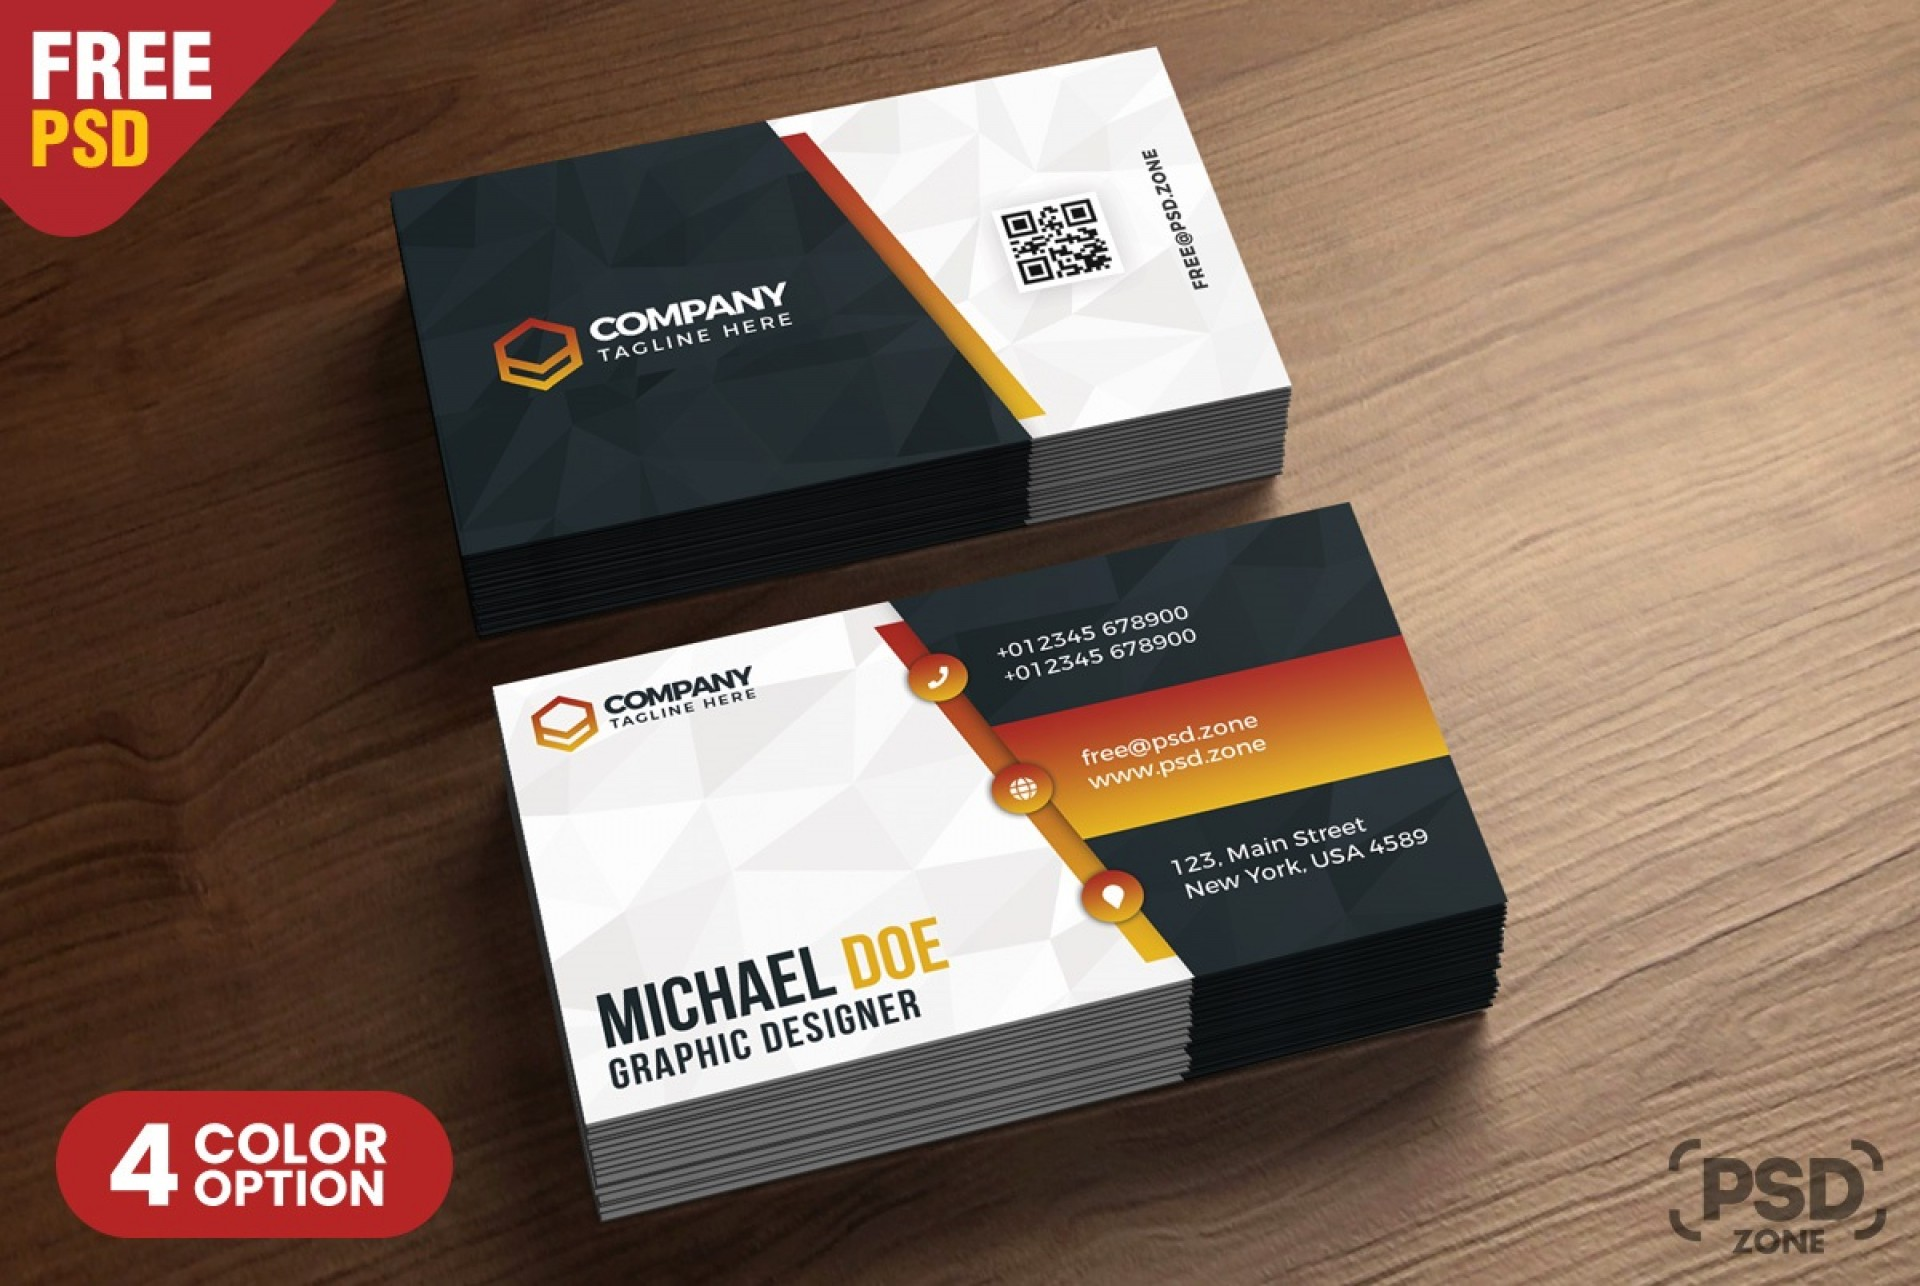 007 Phenomenal Free Busines Card Design Template Photo  Templates Visiting Download Psd Photoshop1920